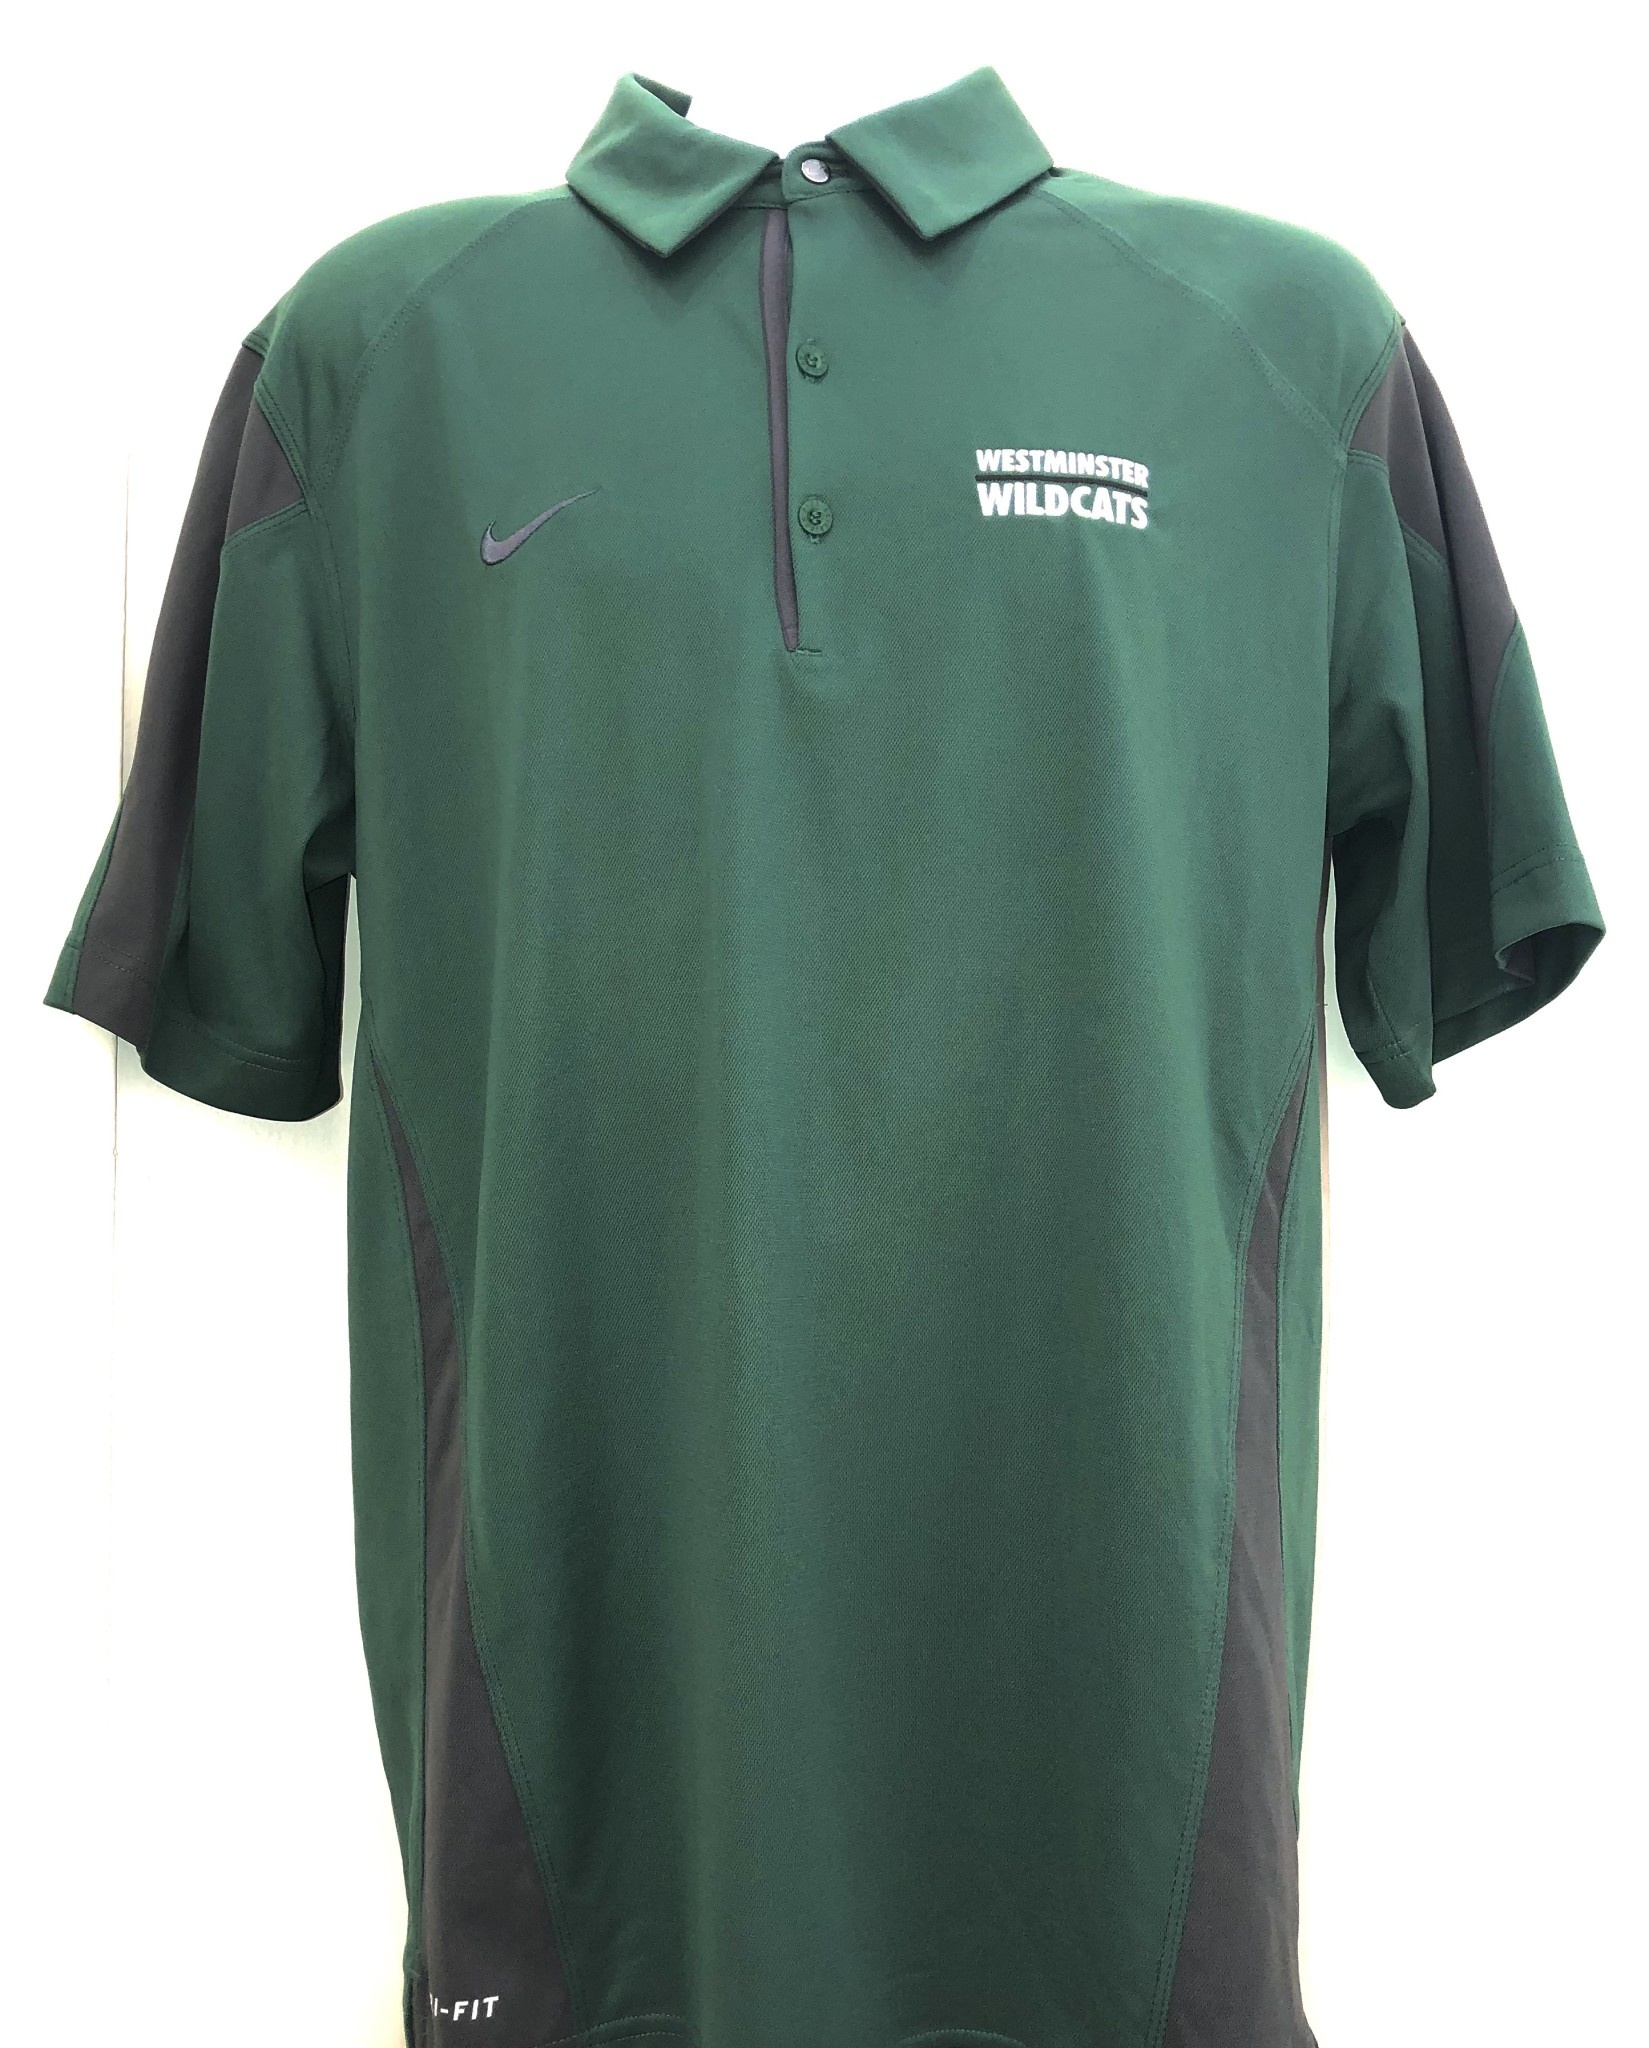 Nike Polo: Nike First Down Green/Anthracite